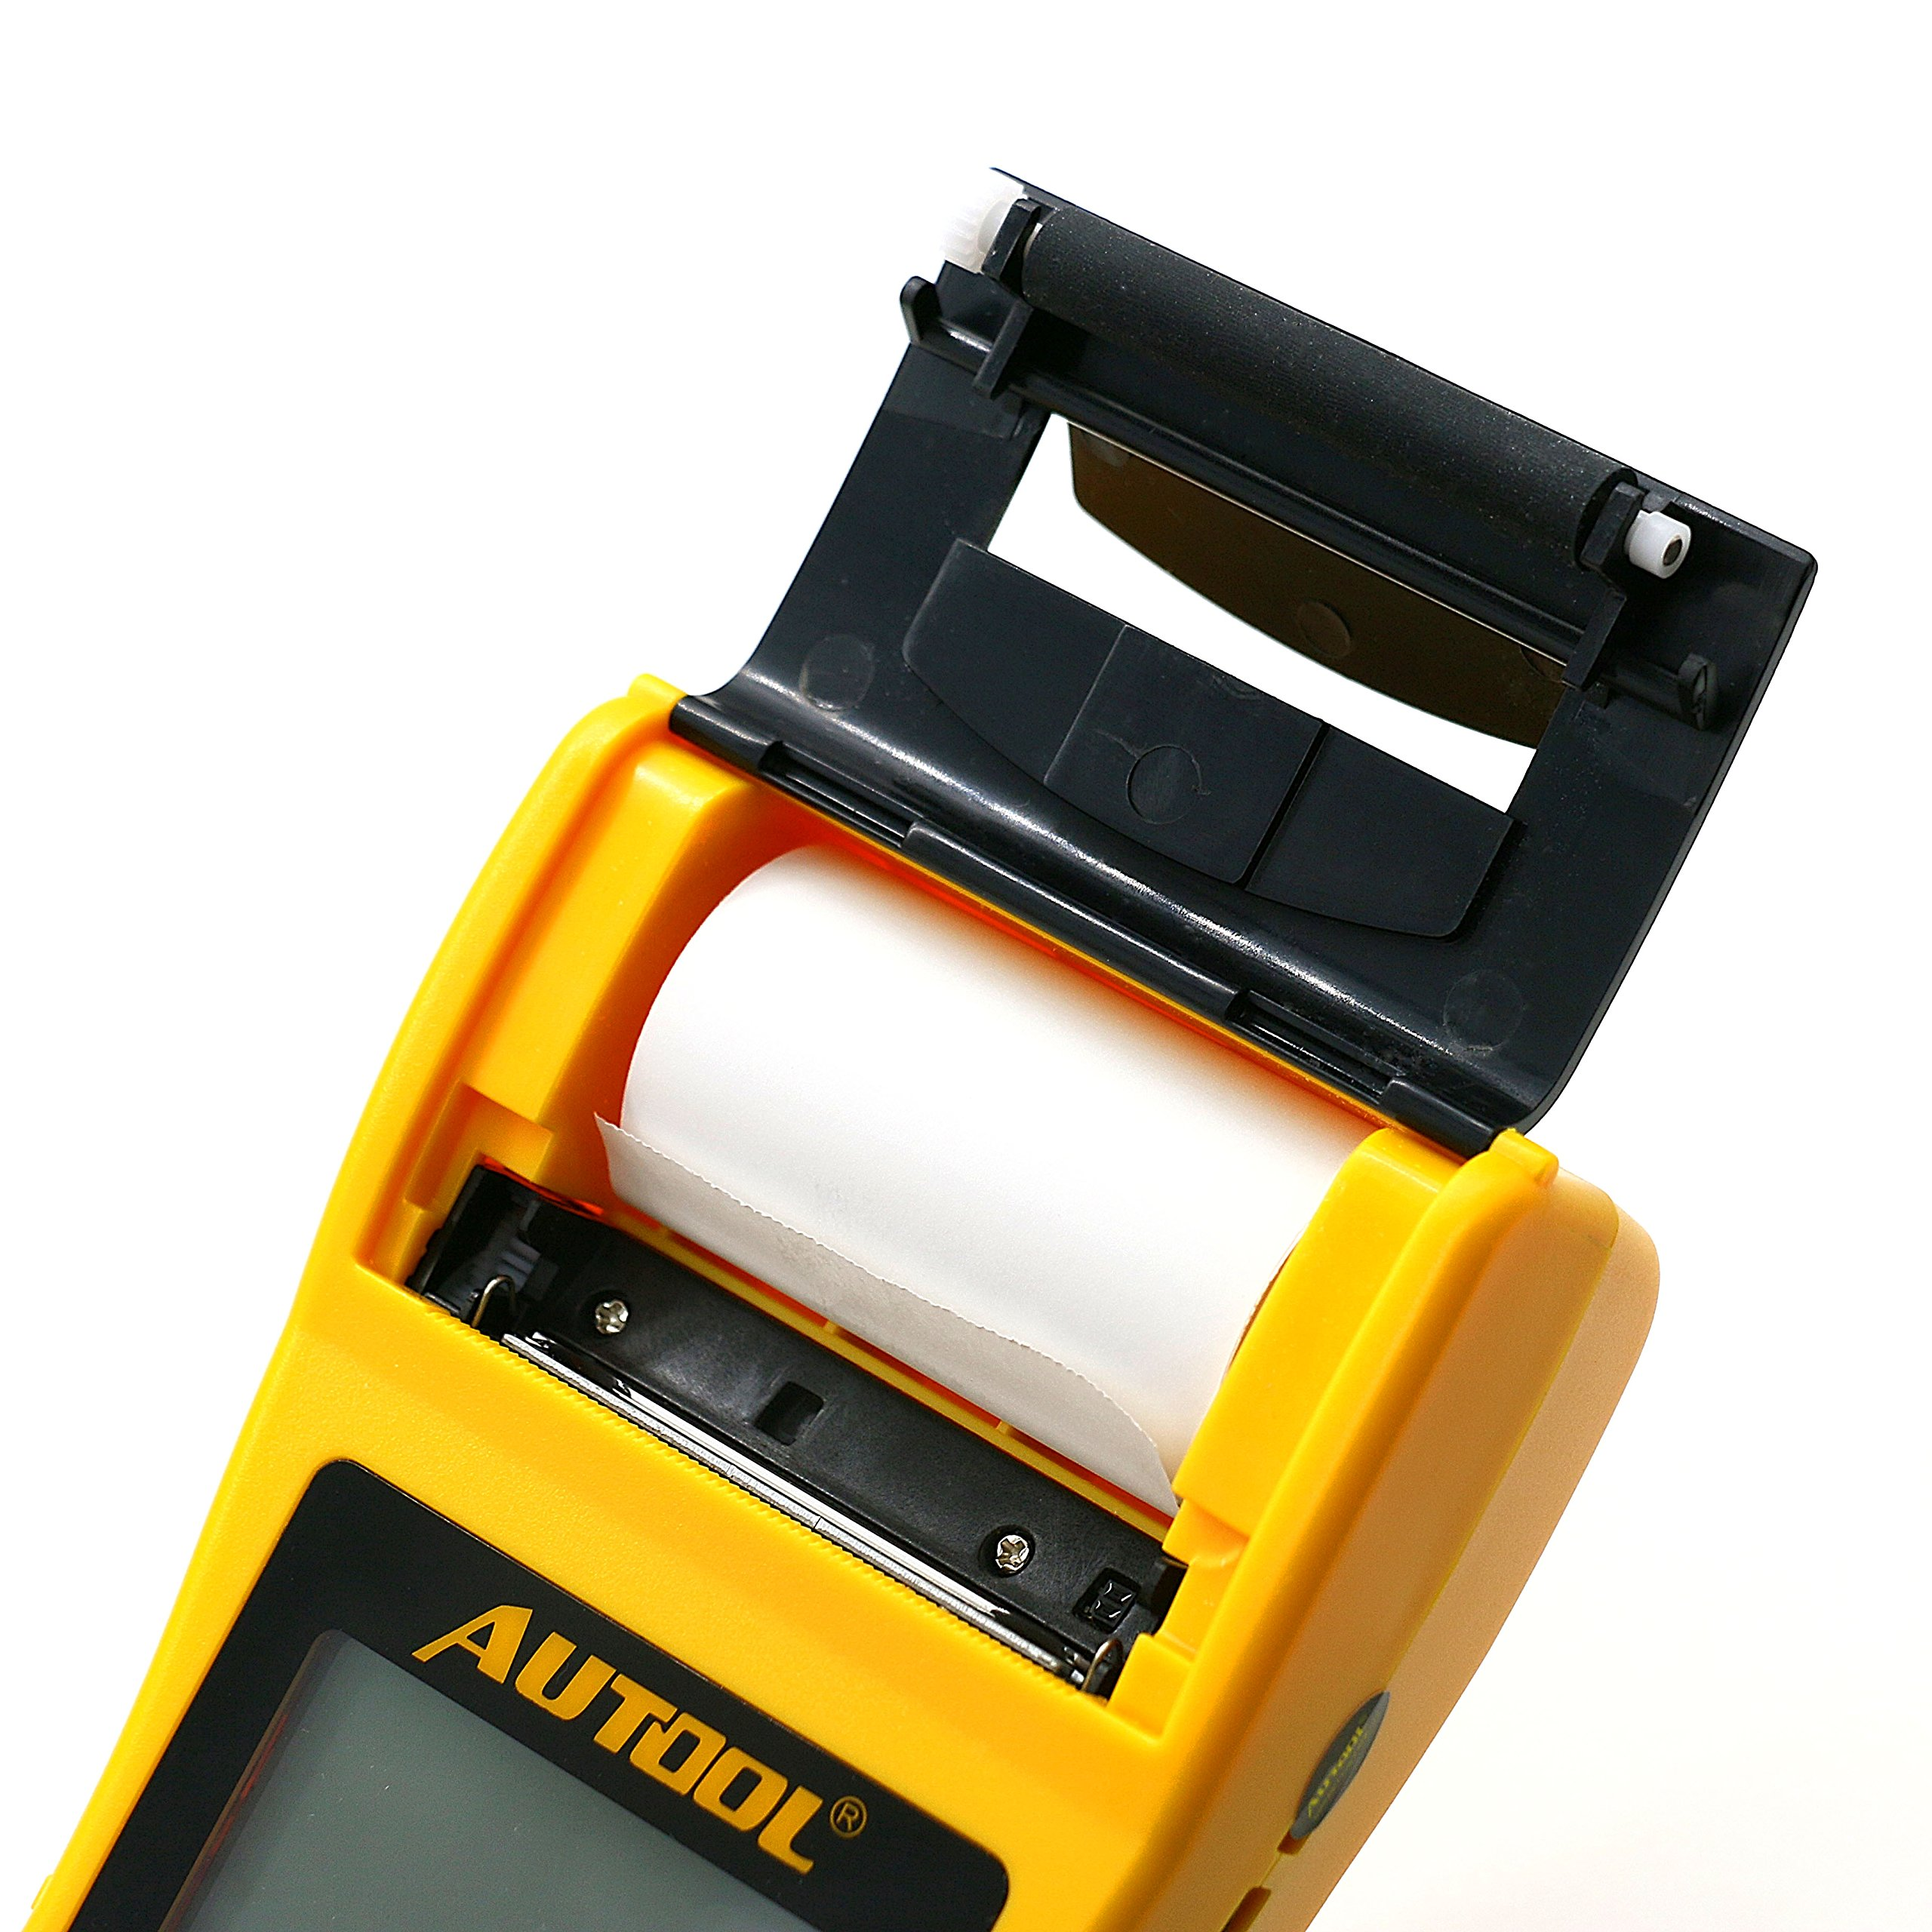 AUTOOL Automotive Battery Tester 12V/24V Car Battery System Tester Cranking and Charging Test ystem Analyzer Scan Tool with Printer (BT-660) by AUTOOL (Image #8)